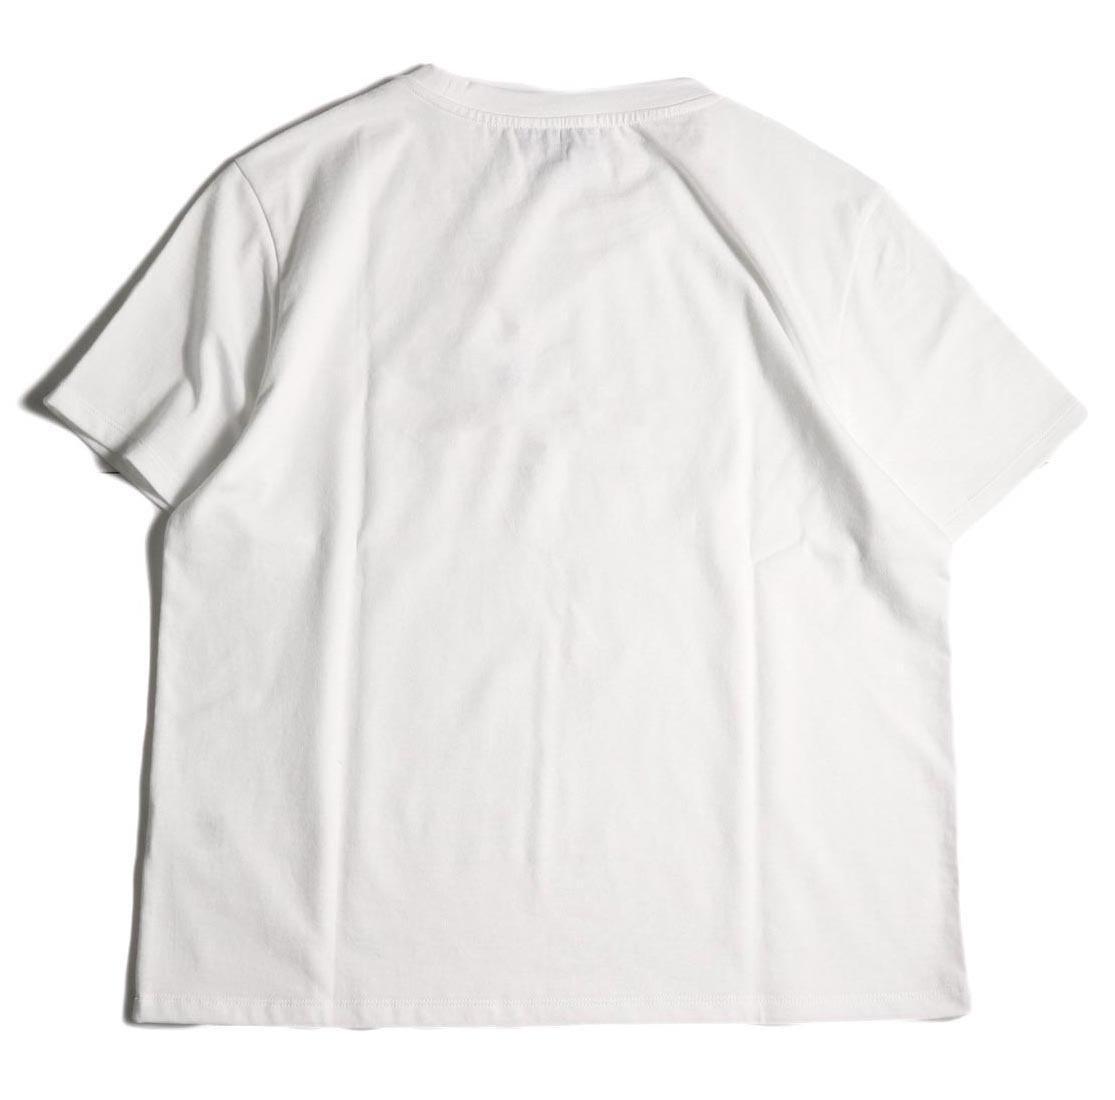 A.P.C. / Crew Neck Pocket Tee (White) 背面